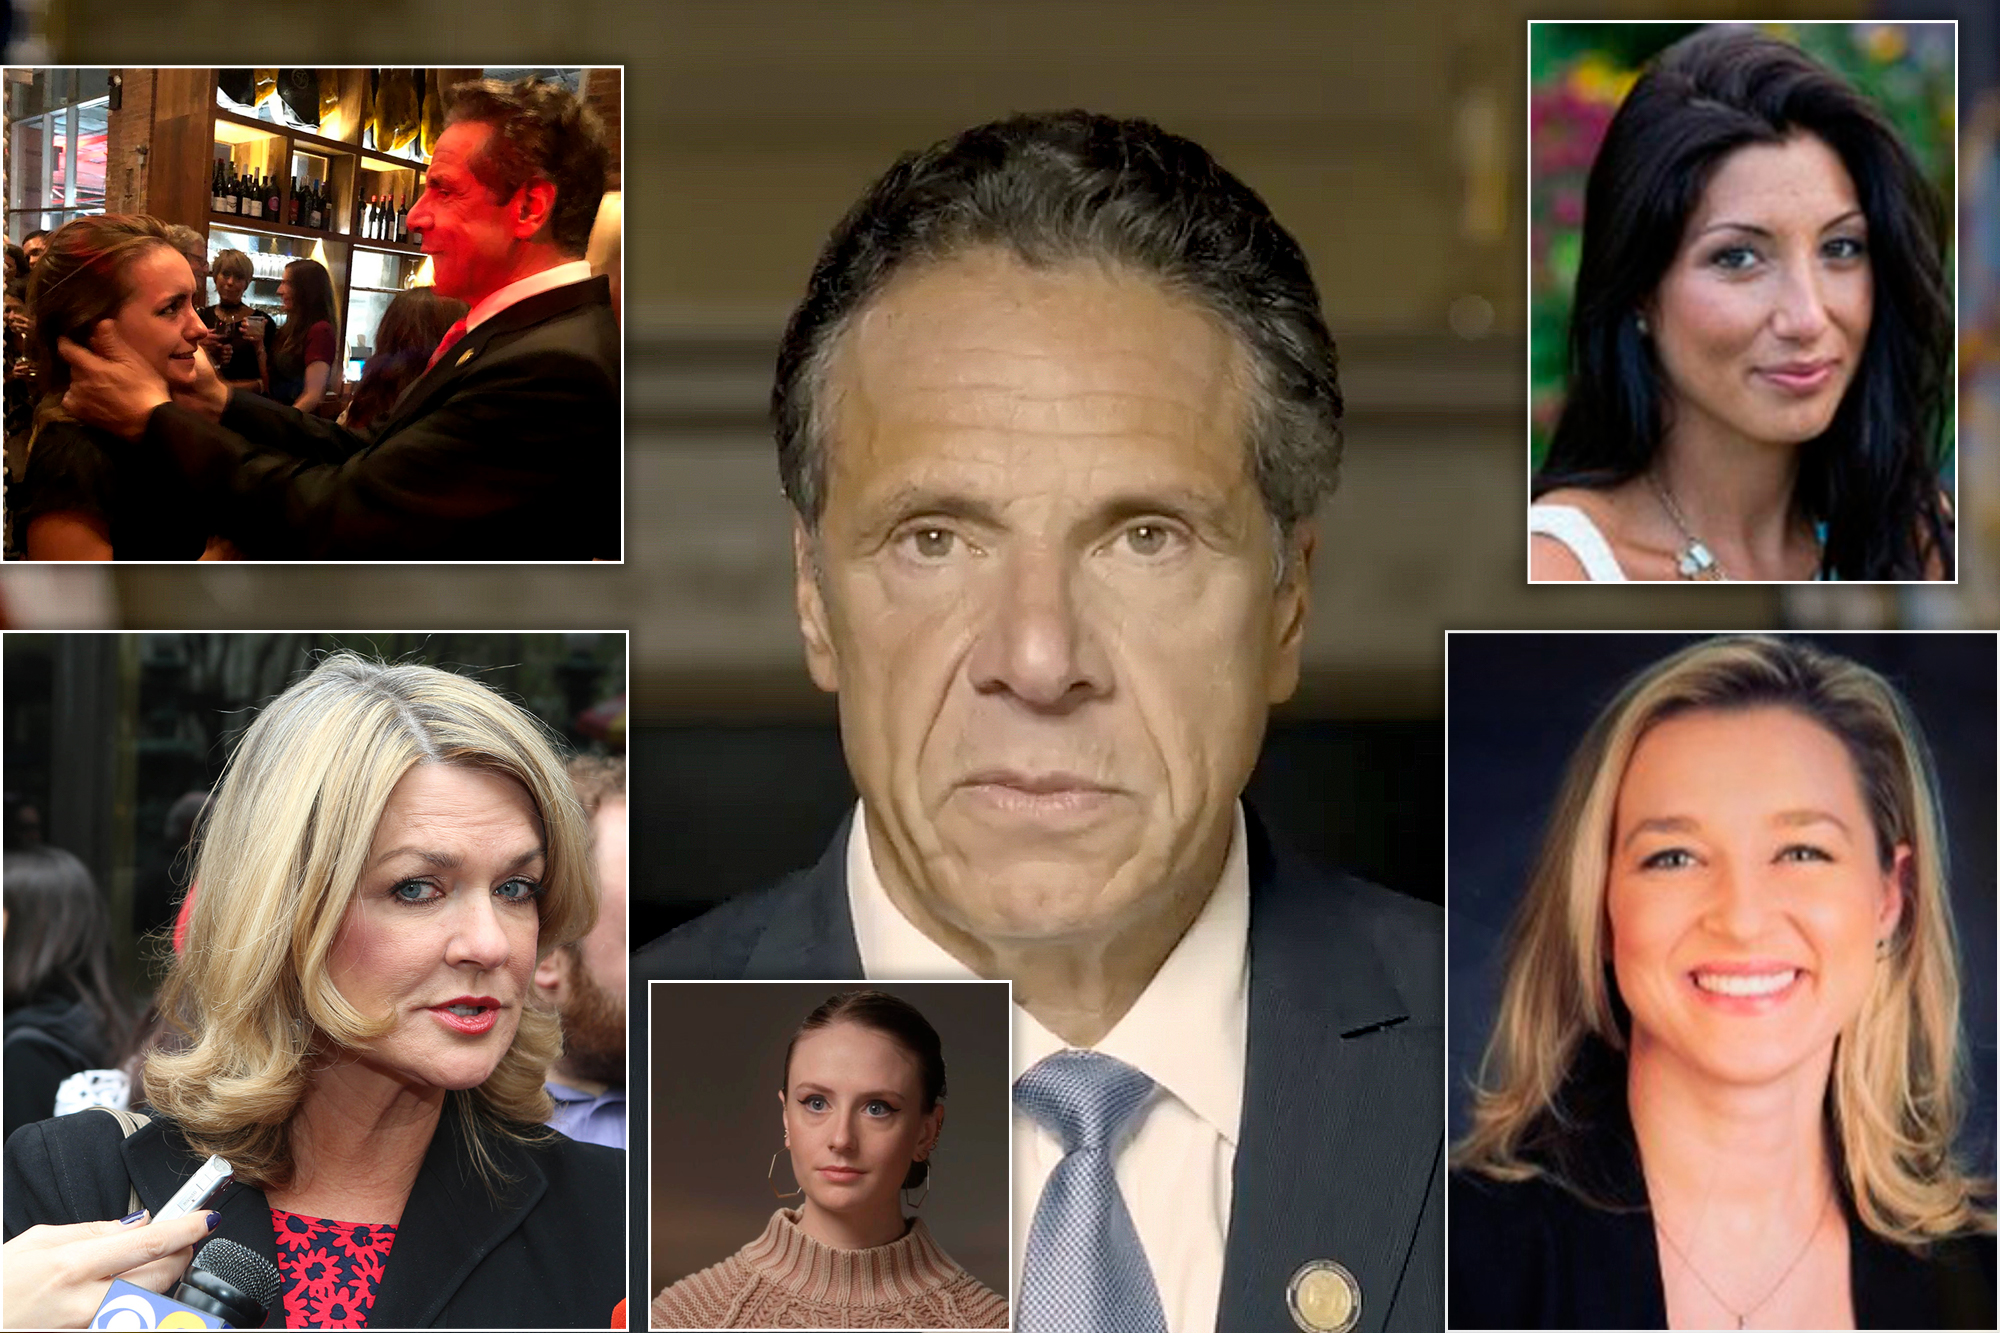 These are the women who were sexually harassed by Andrew Cuomo: AG